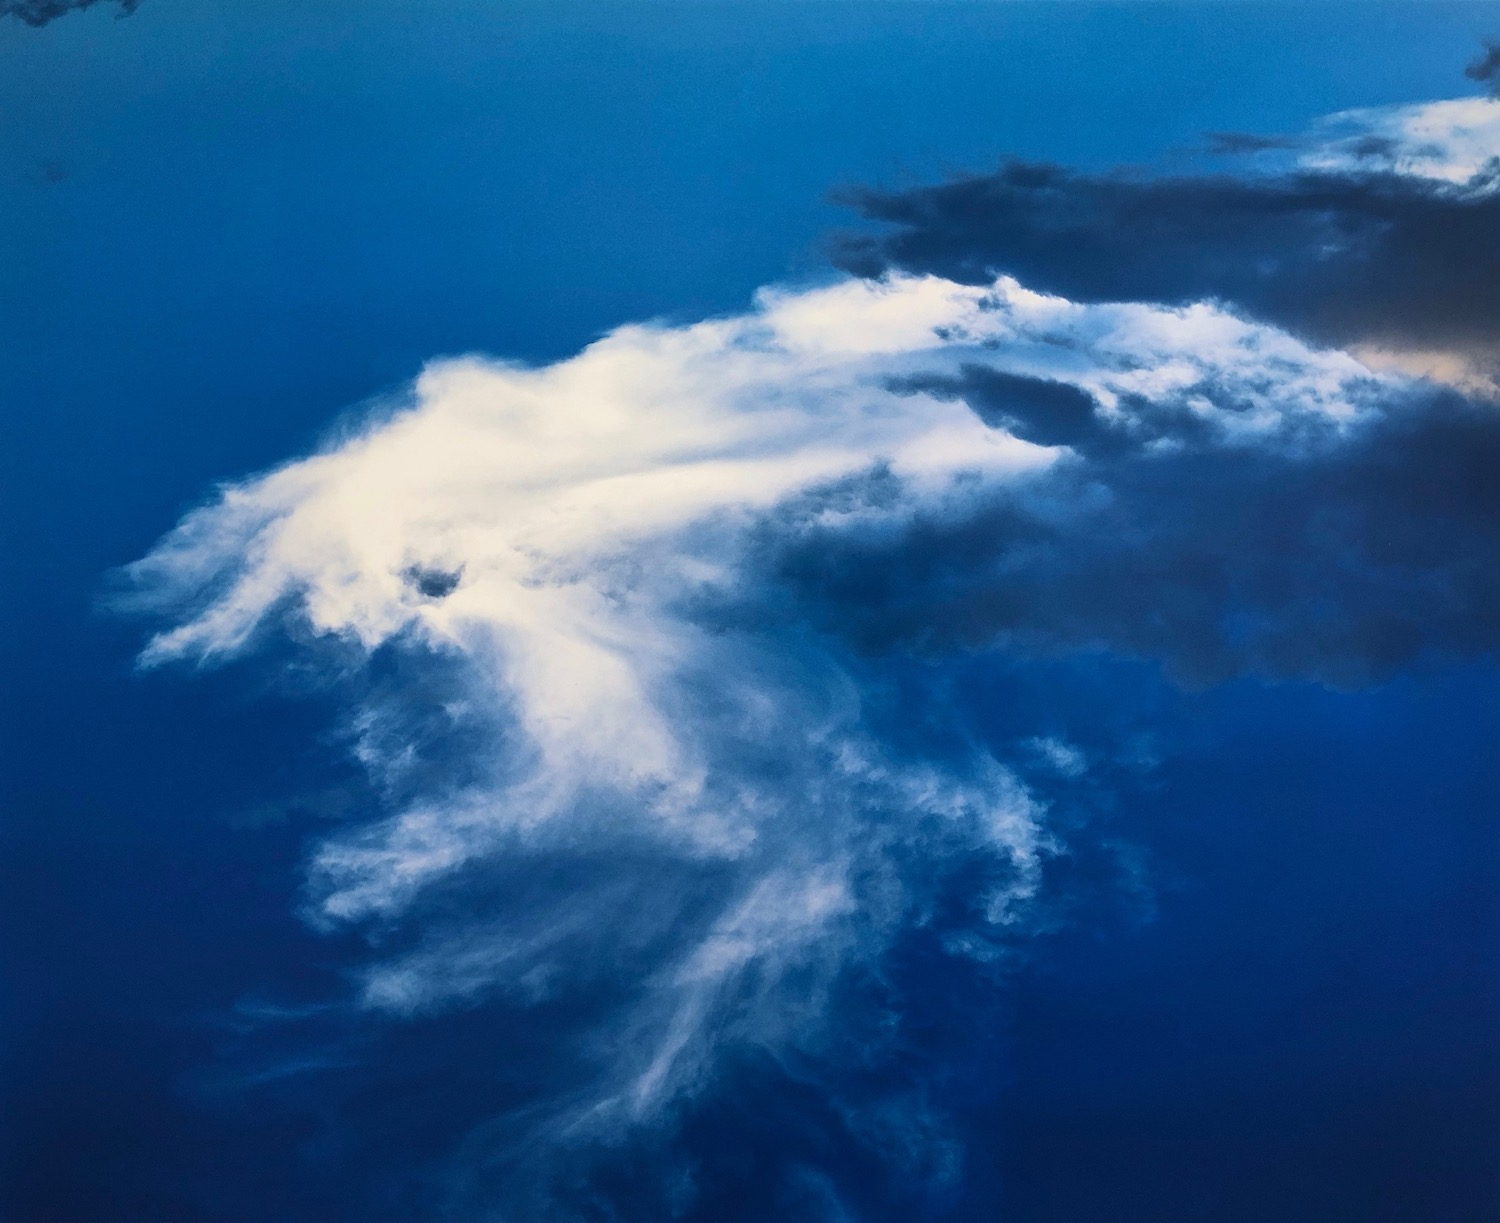 Michael Doster Cloud (Biarritz) 2008 97 x 120 cm Analog Photography C-Print on Alu-Dibond signed dated and numbered 1/3